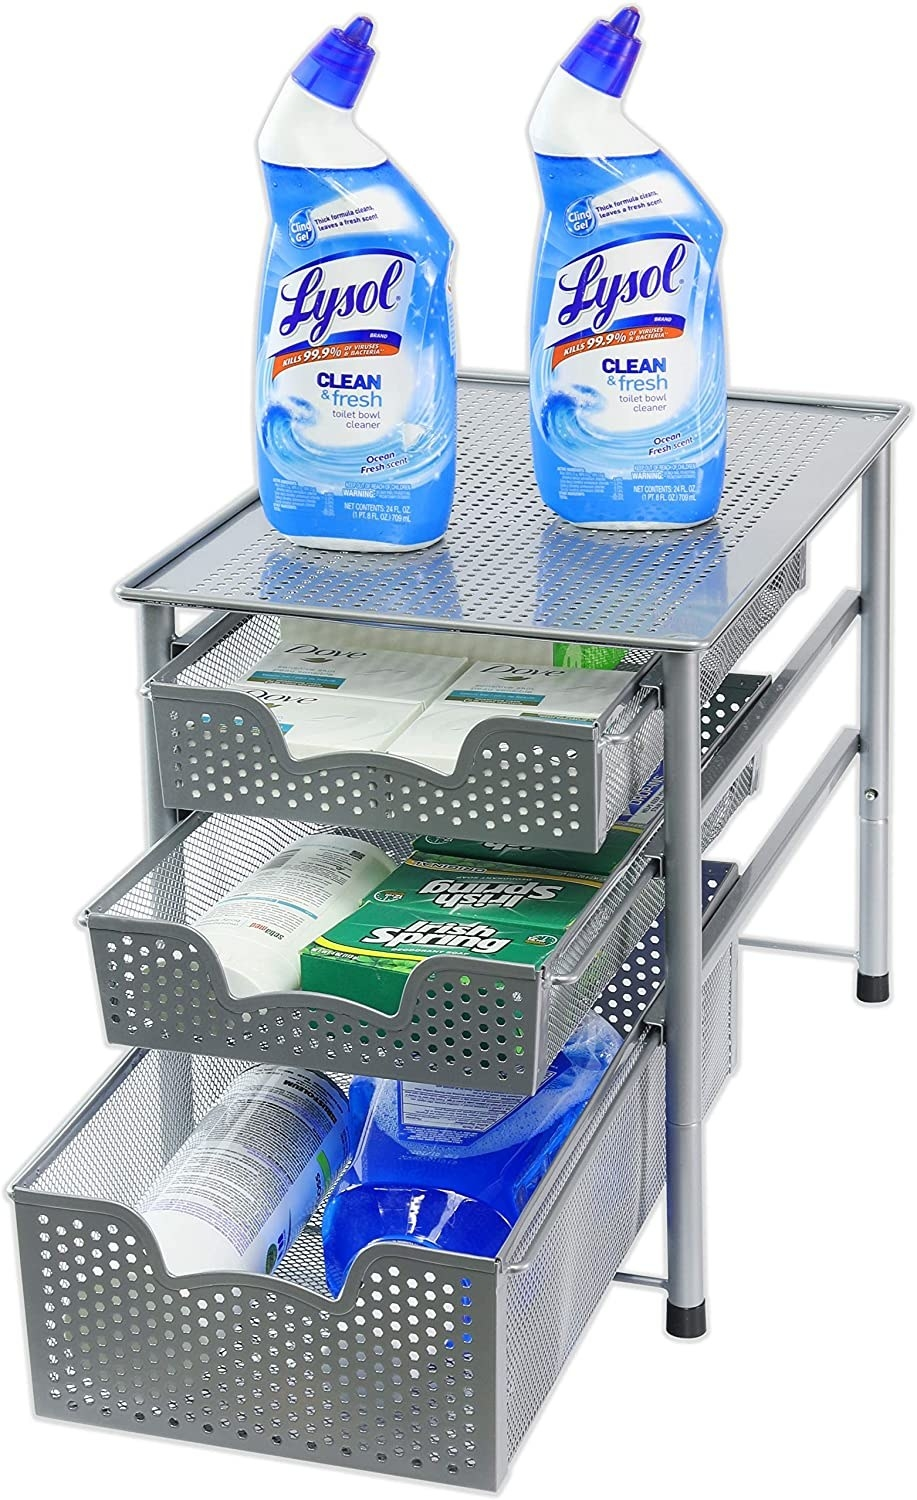 The organizer with three shelves and room to stack things on top